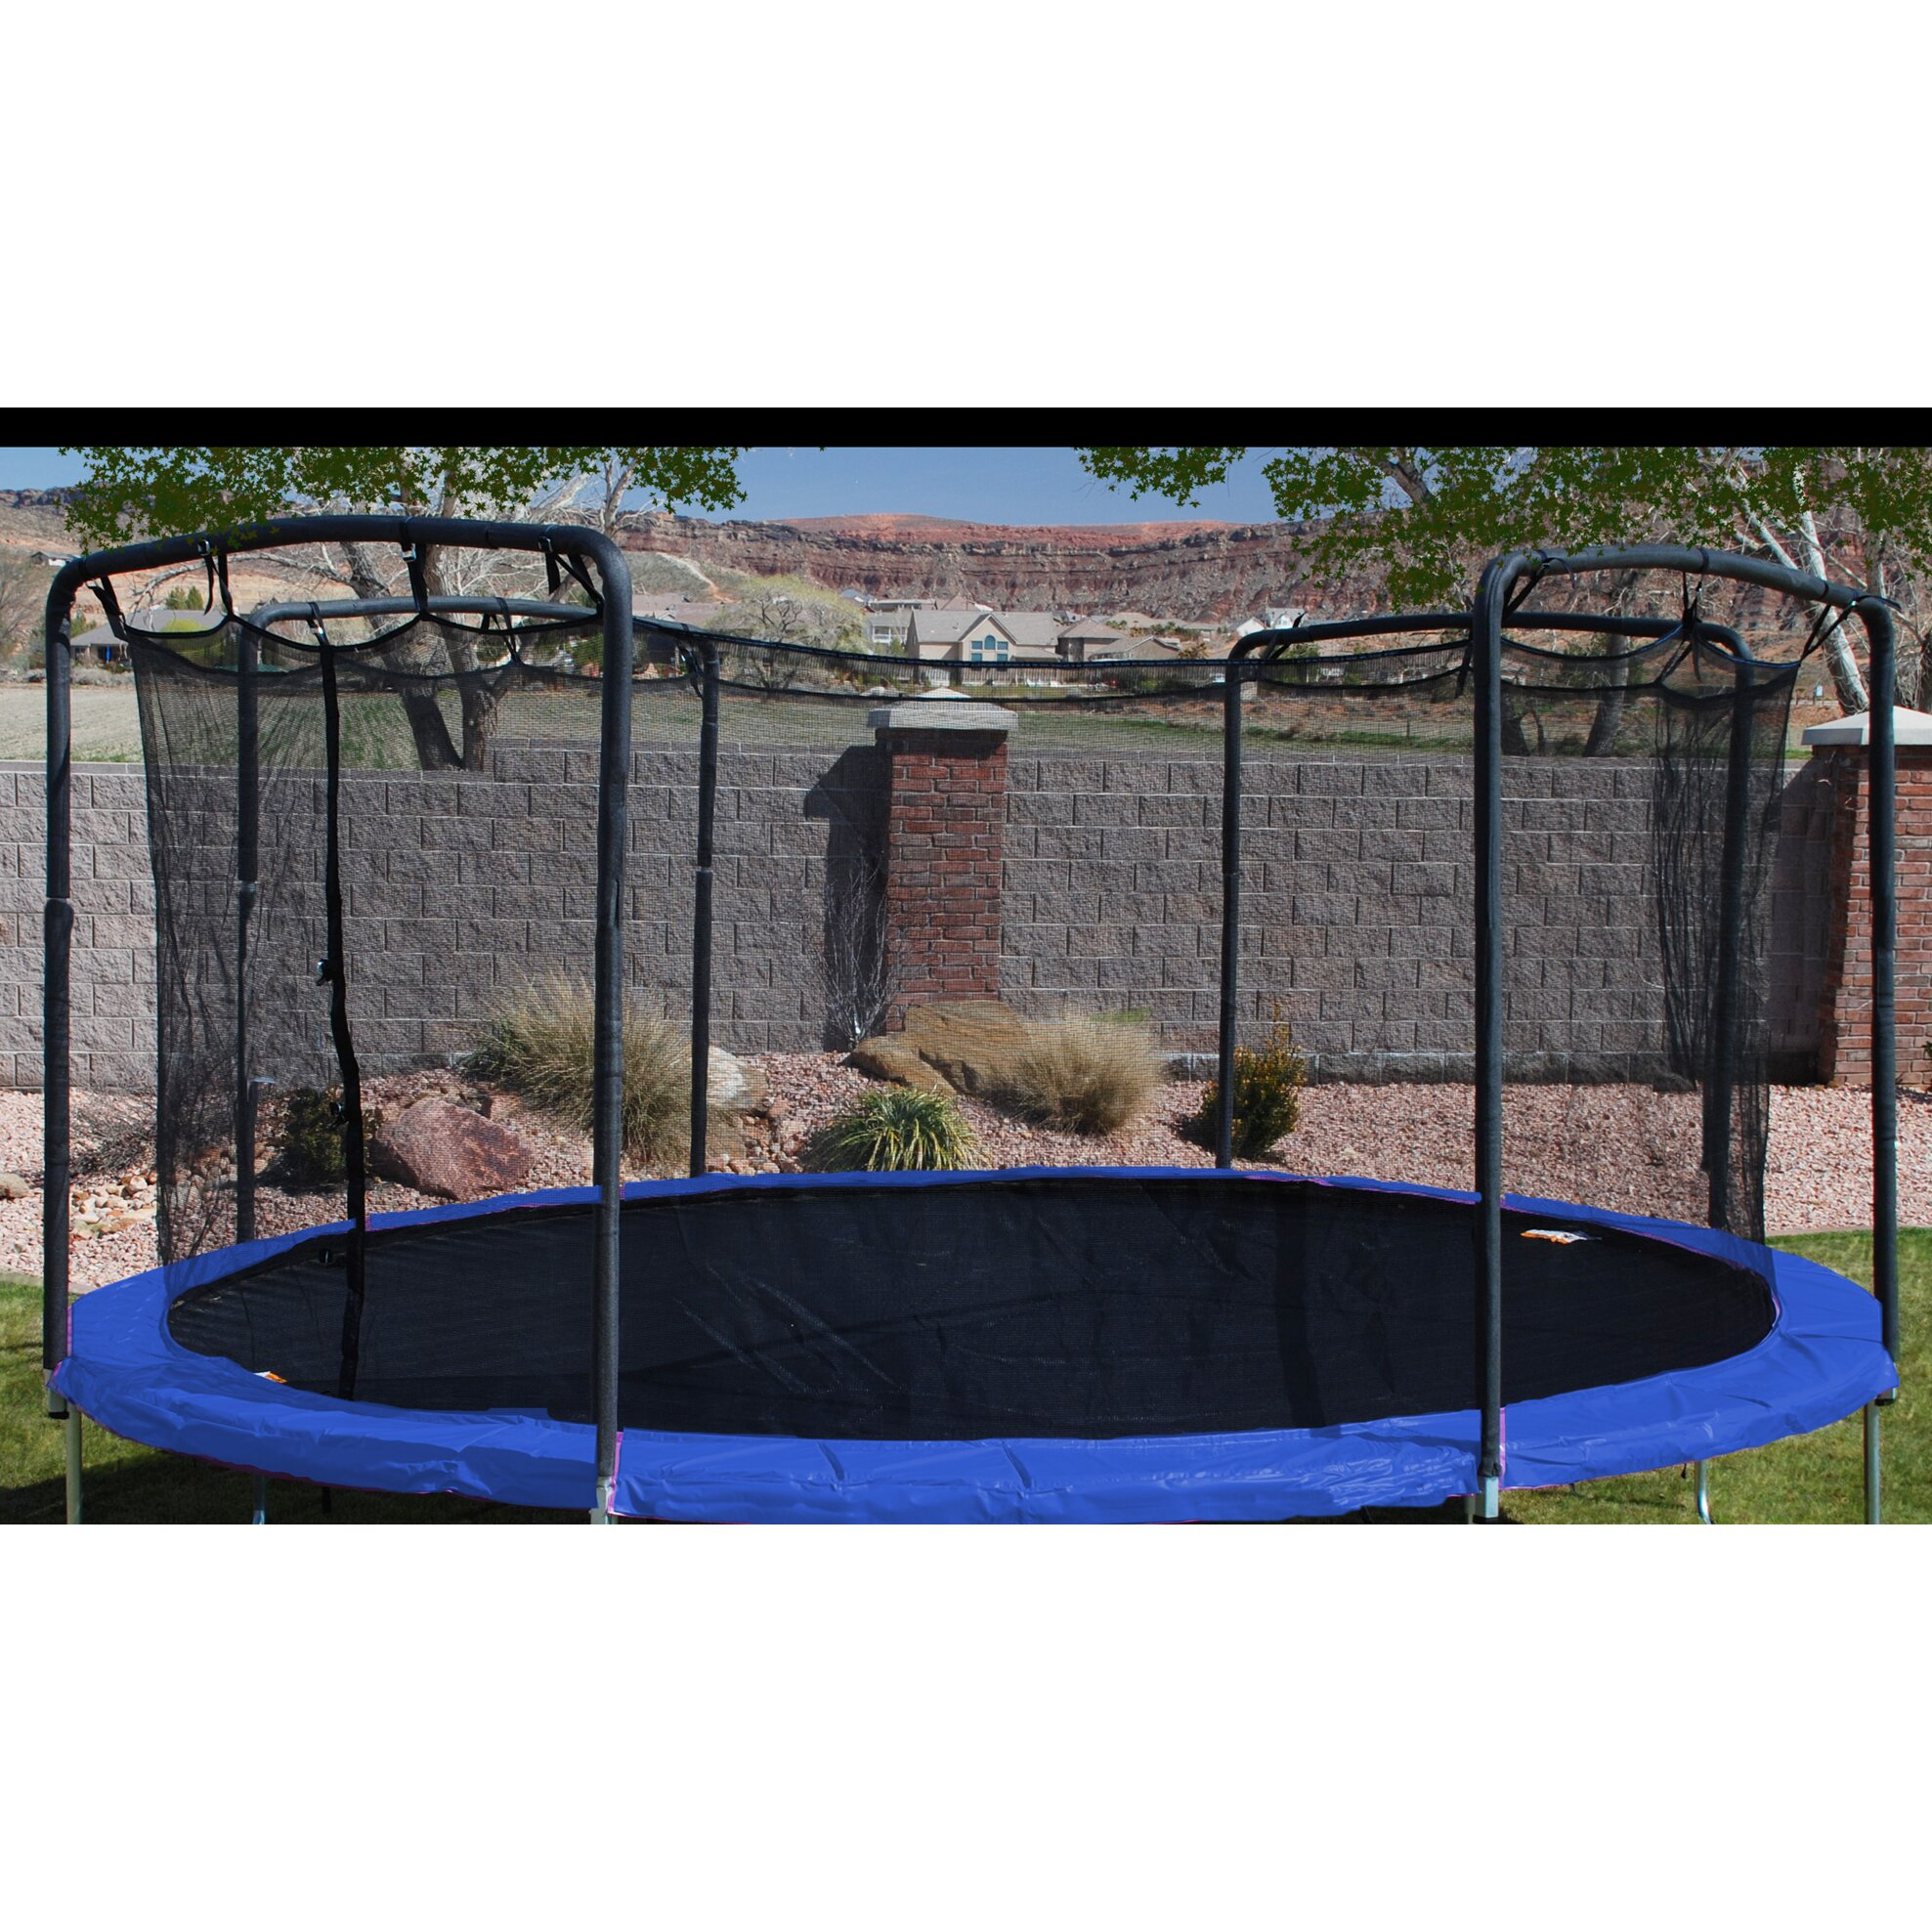 17 X 15 Oval Trampoline With Safety Enclosure: Skywalker 17' X 15' Oval Trampoline Replacement Frame Pad